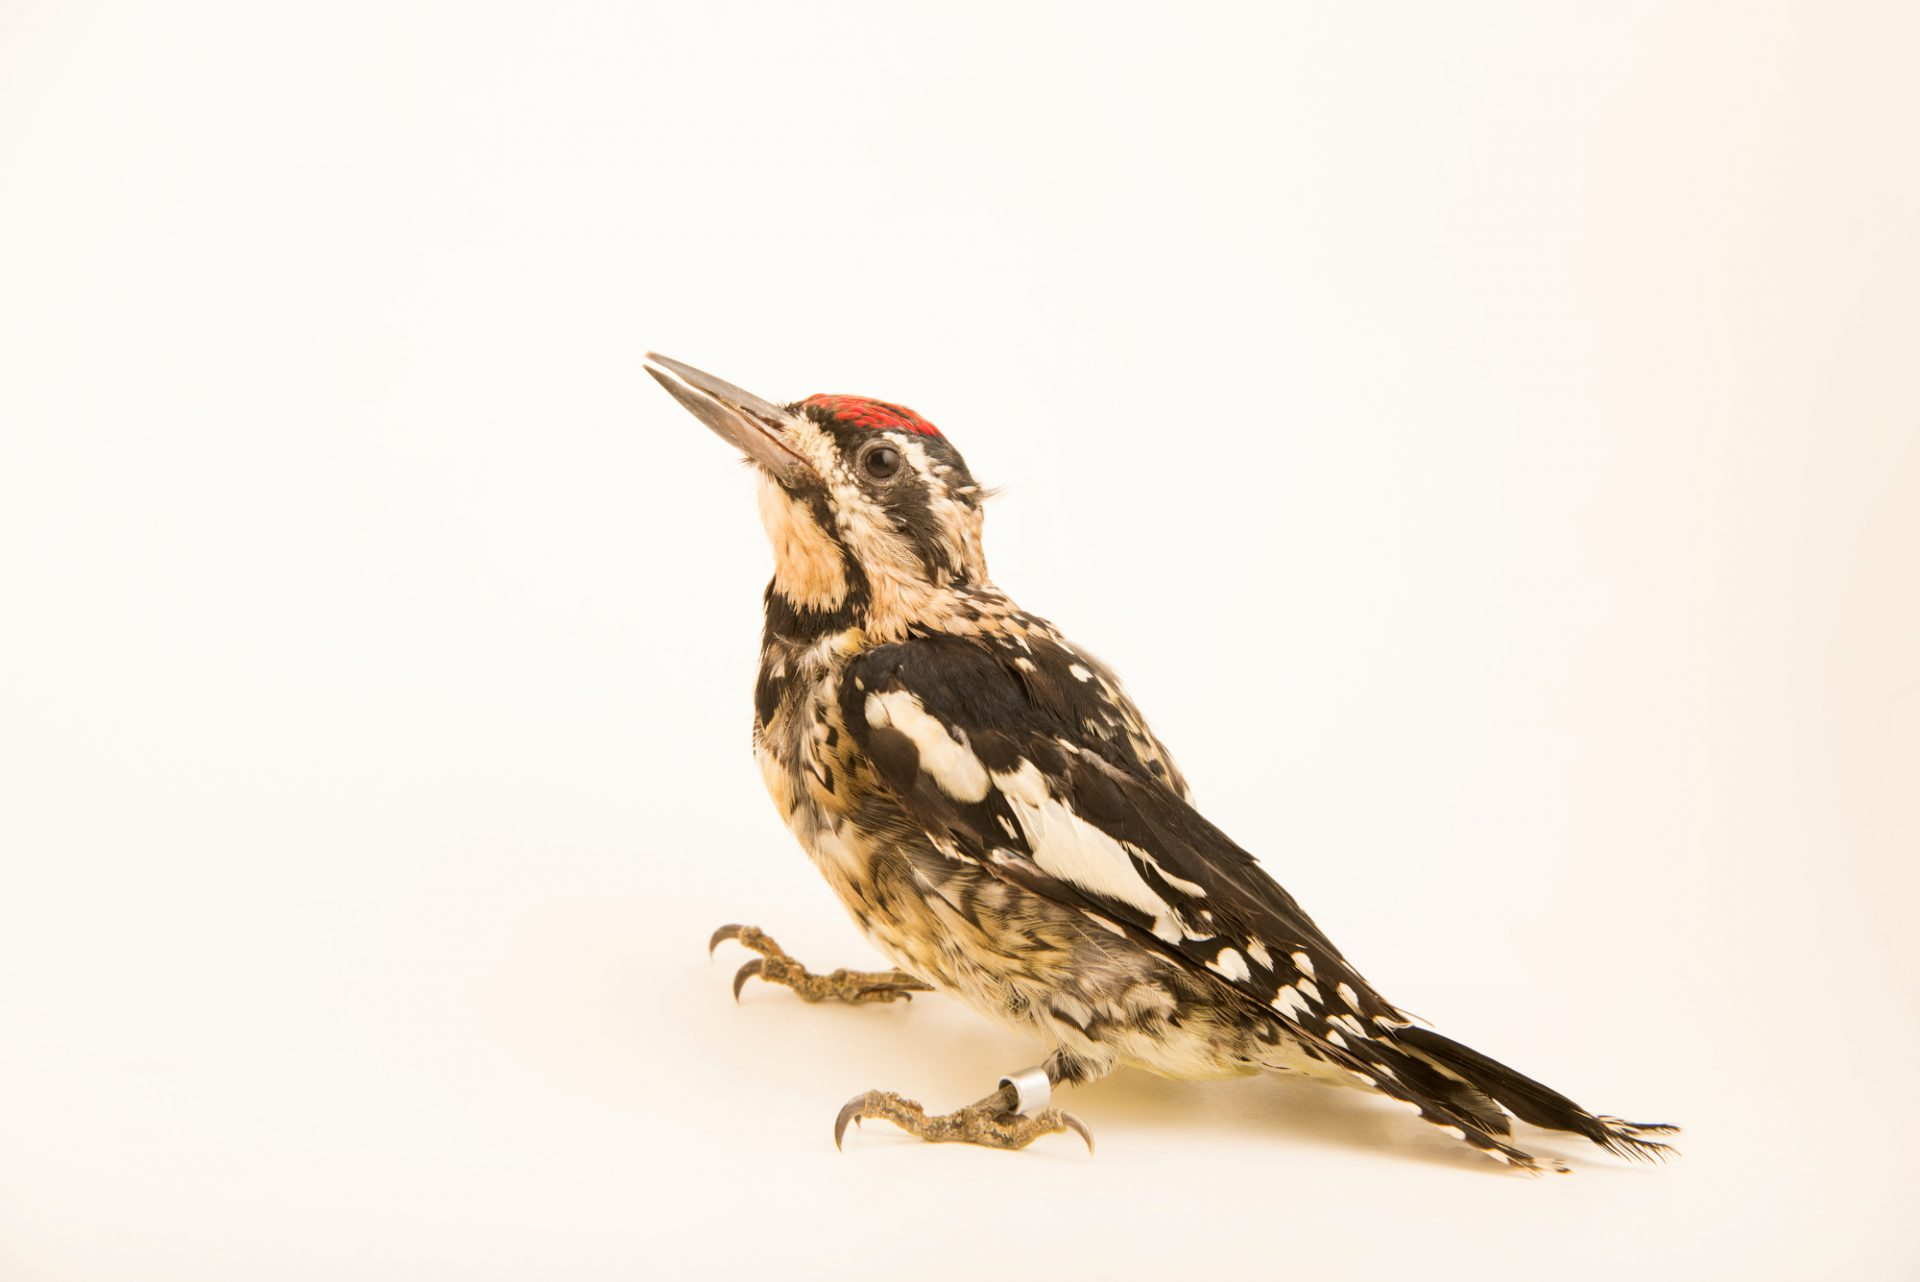 A female yellow-bellied Sapsucker (Sphyrapicus varius) at Bay Beach Wildlife Sanctuary.